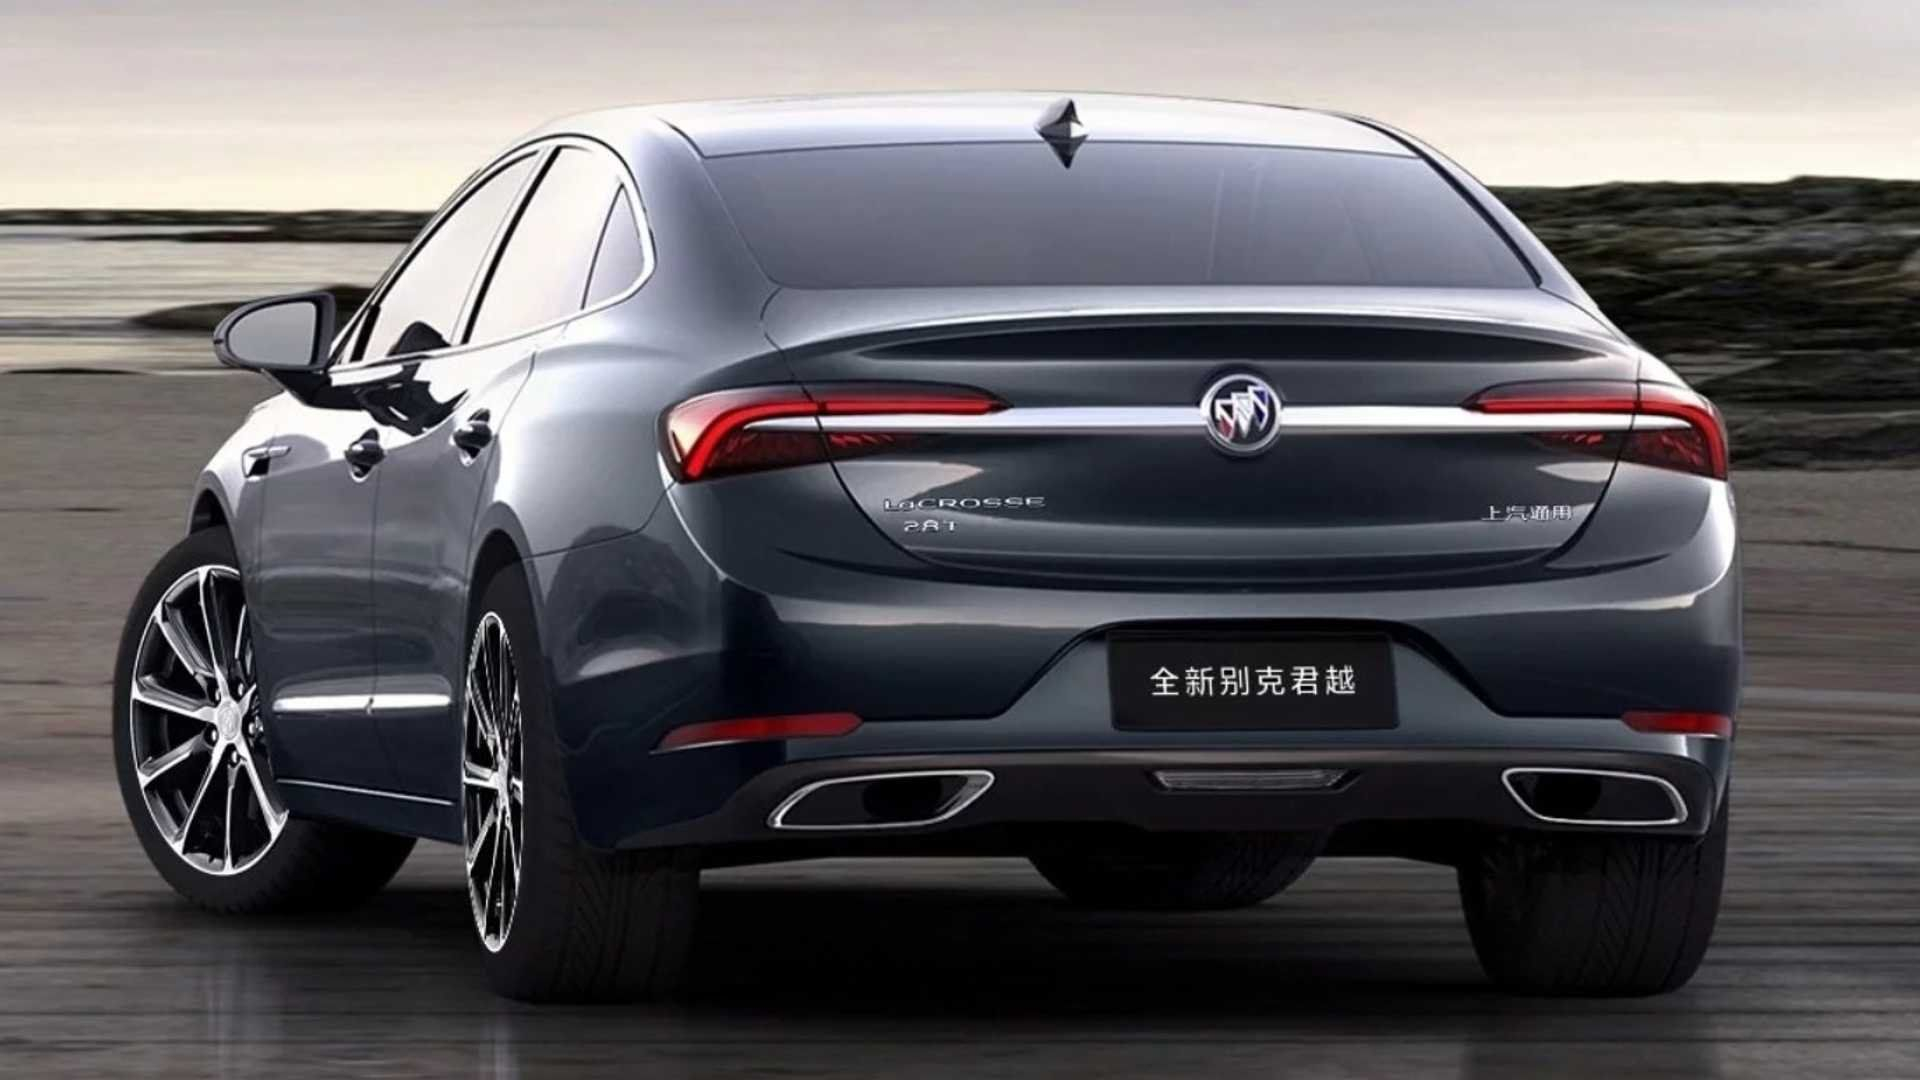 2021 Buick Lacrosse Release Date In 2020 | Buick Lacrosse What Will The New 2021 Buick Lacrosse Look Like